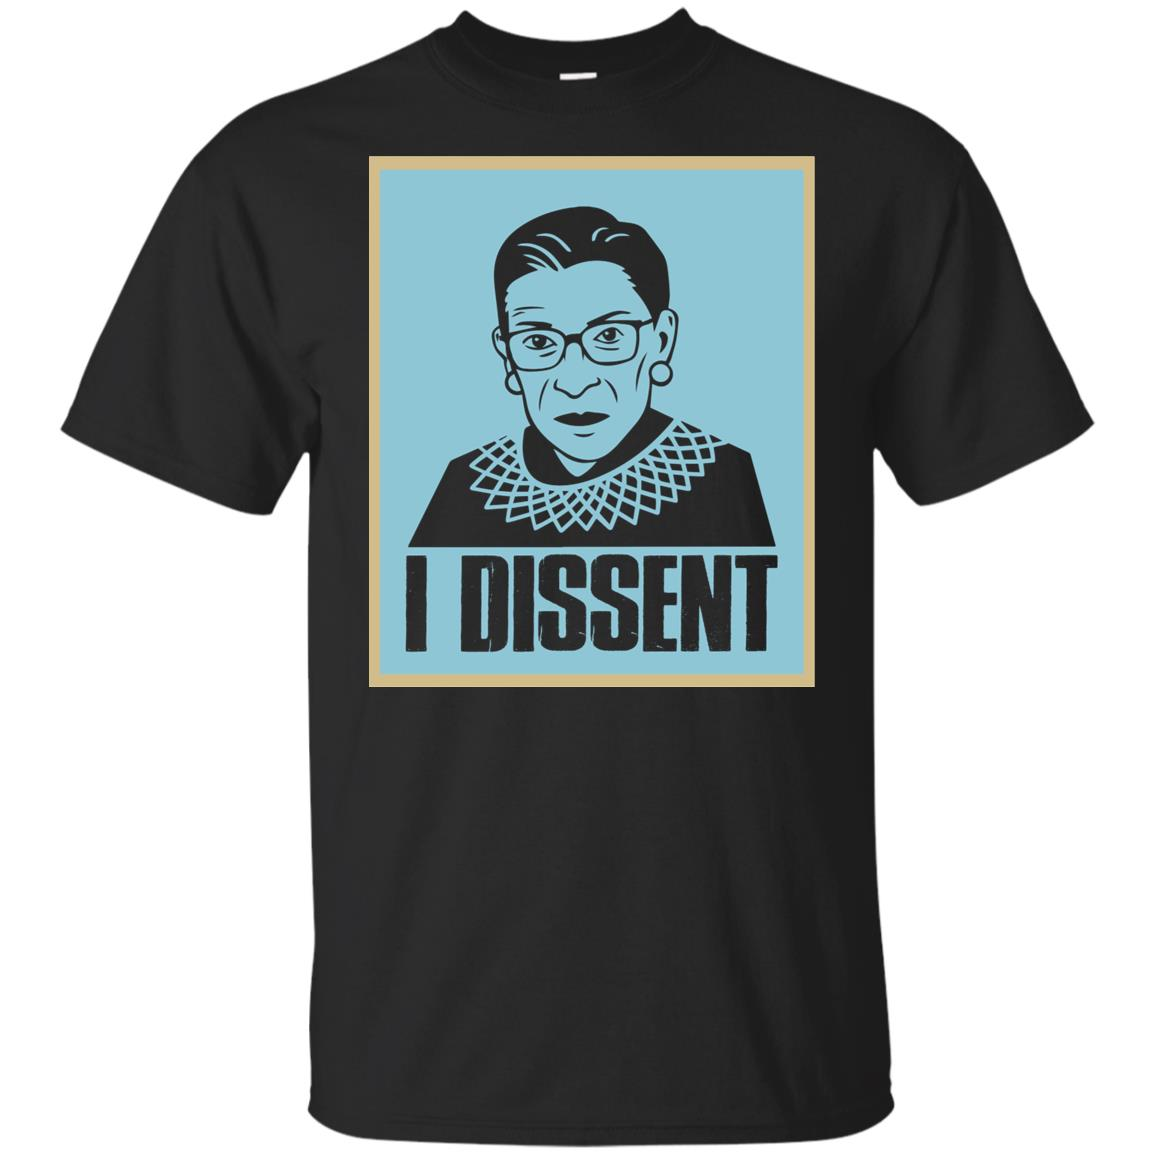 Notorious R.b.g. I Dissent Progressive Tee 4 Women & Men-1 Unisex Short Sleeve